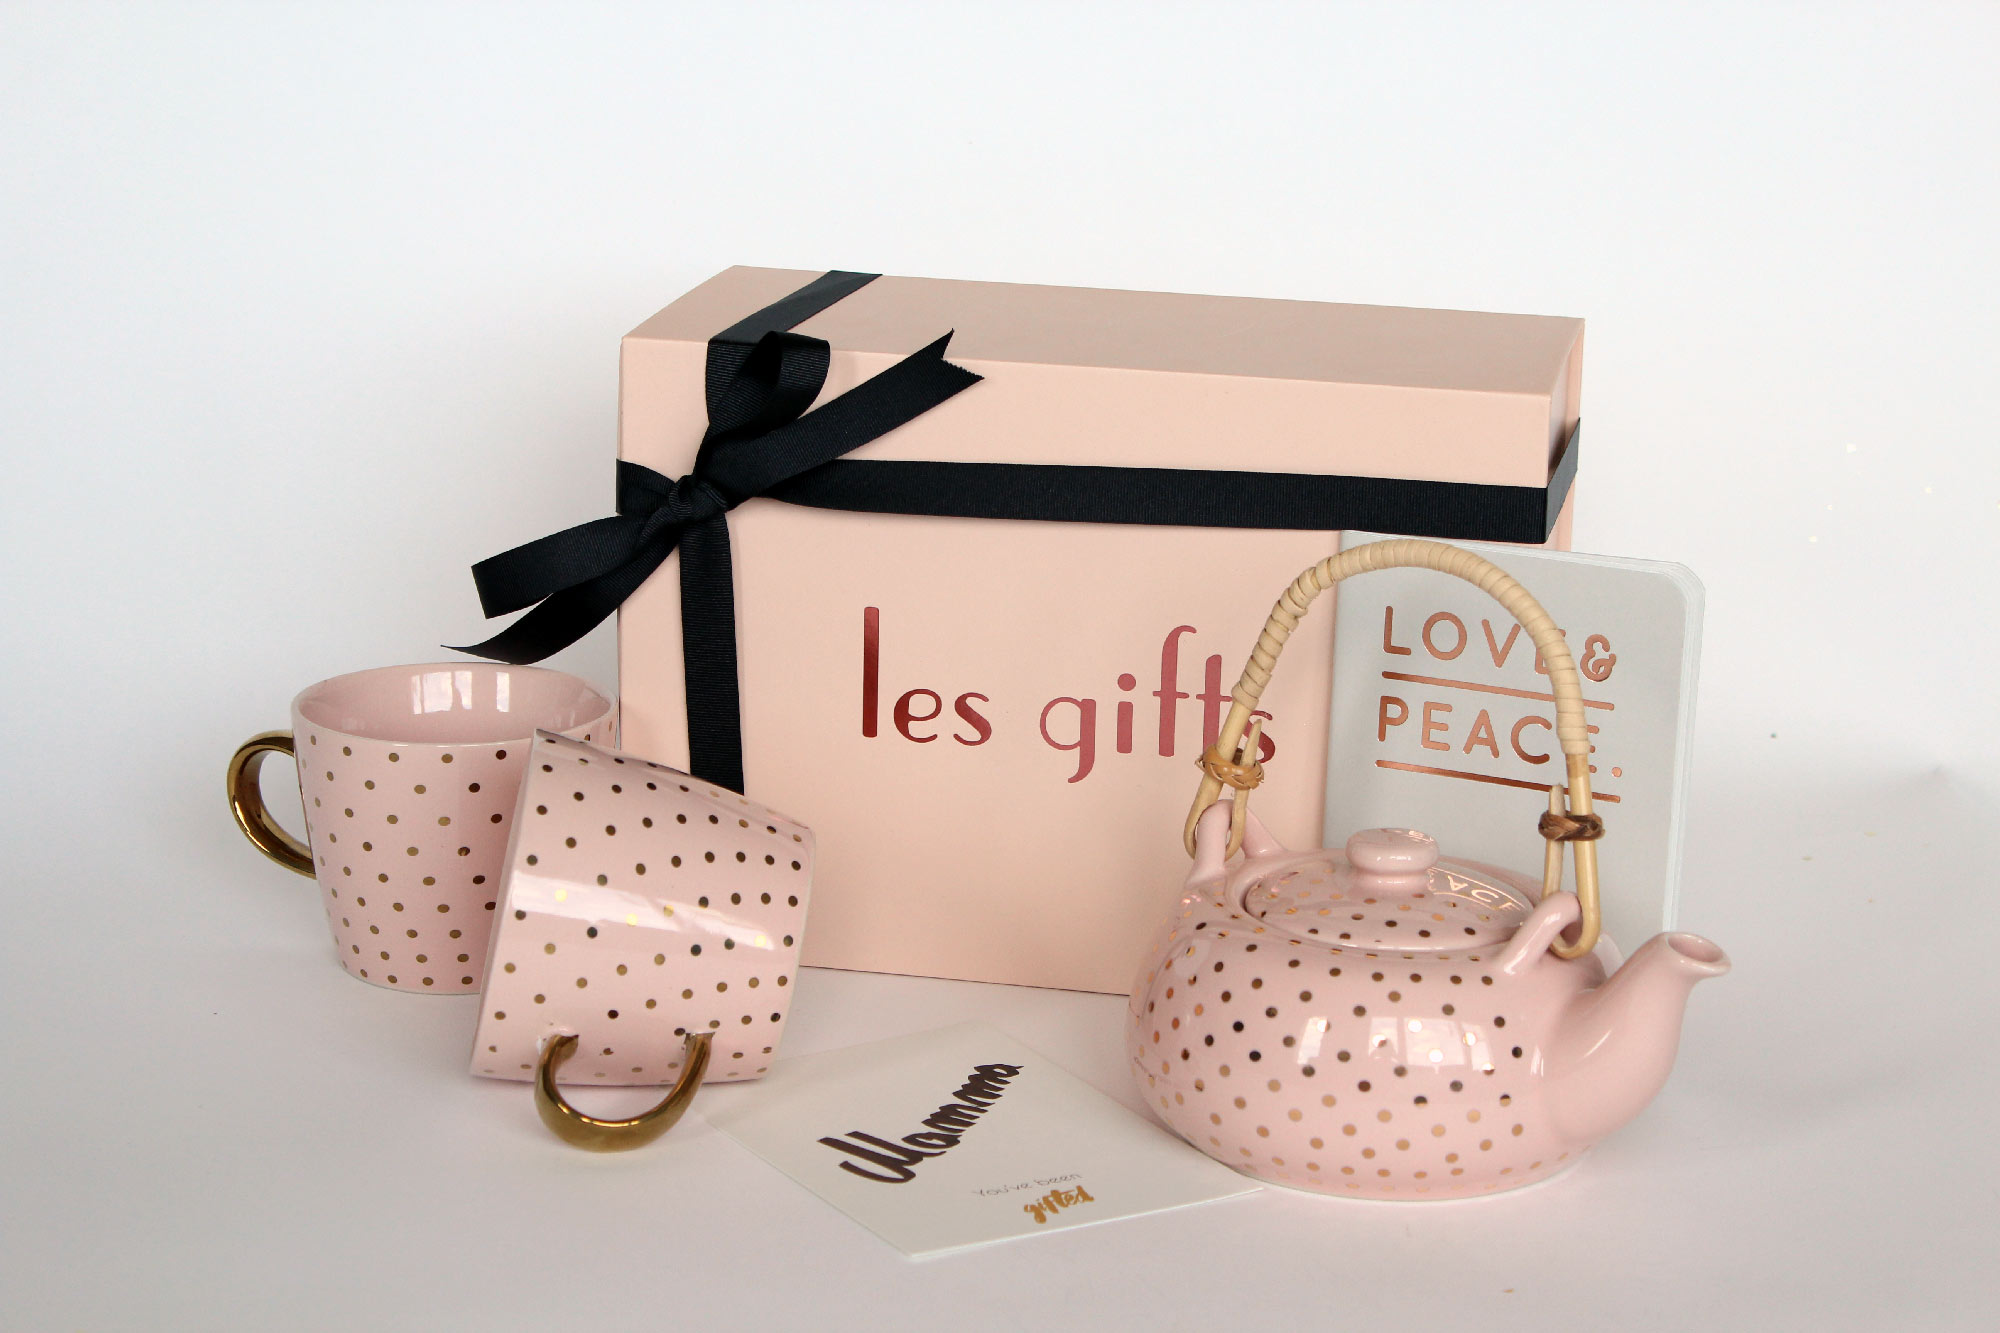 curated boxes with design gifts for mother's day